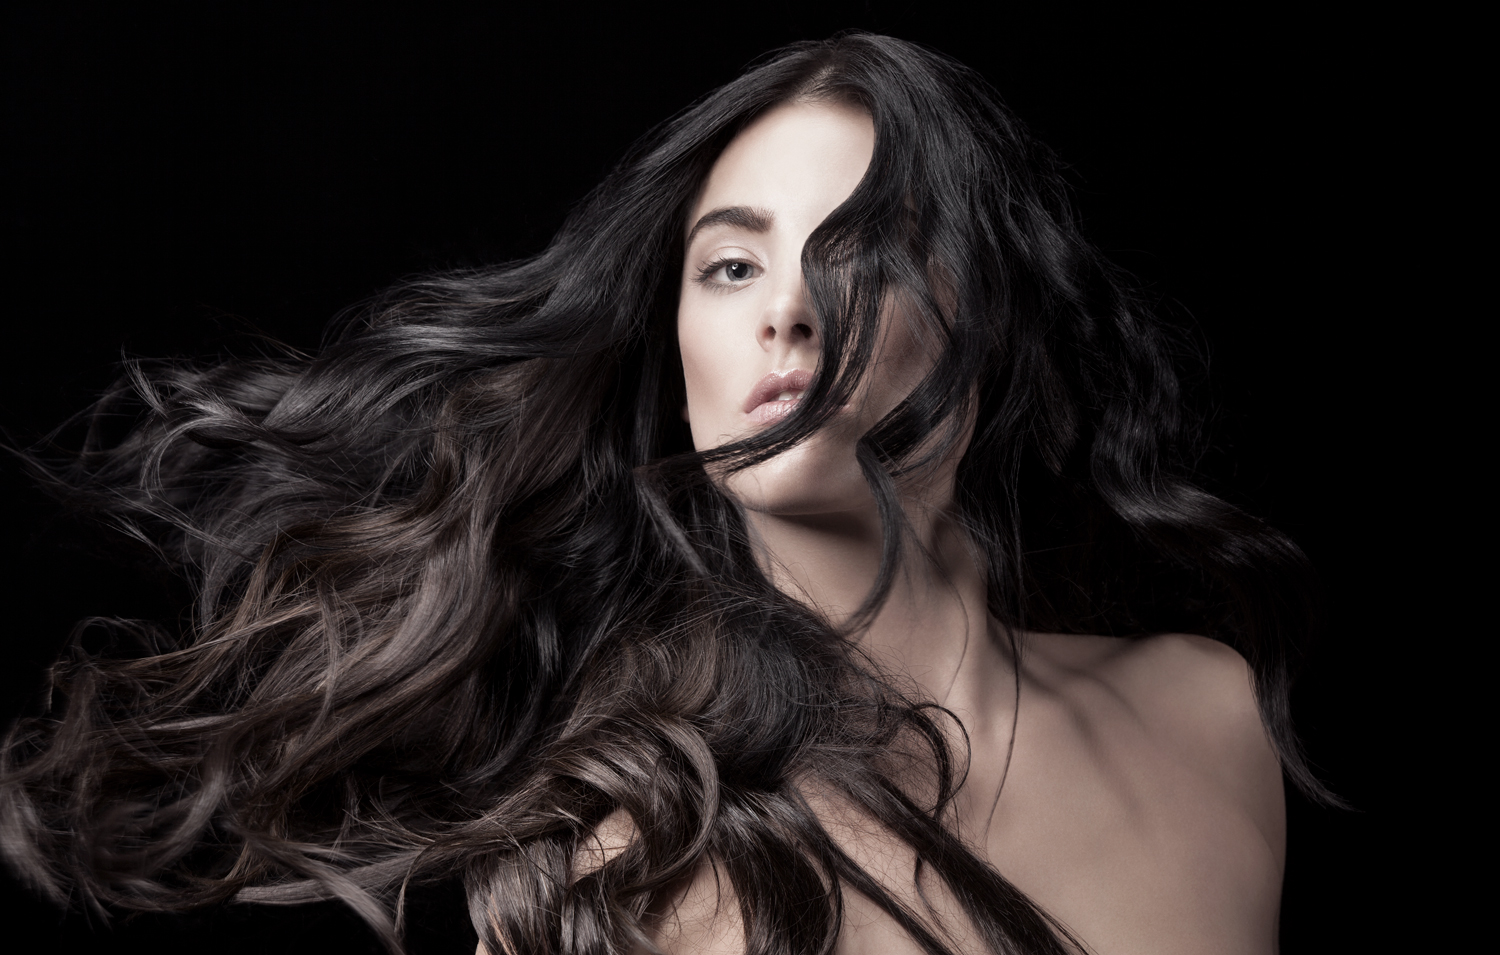 ZEN HAIR - In 2013 Zen Hair Extensions launched the most luxurious hair extensions brand in the UK. To support this and sustain their press, online and social media profile VIViD created an integrated a strategy spanning PR and social media and campaigns.